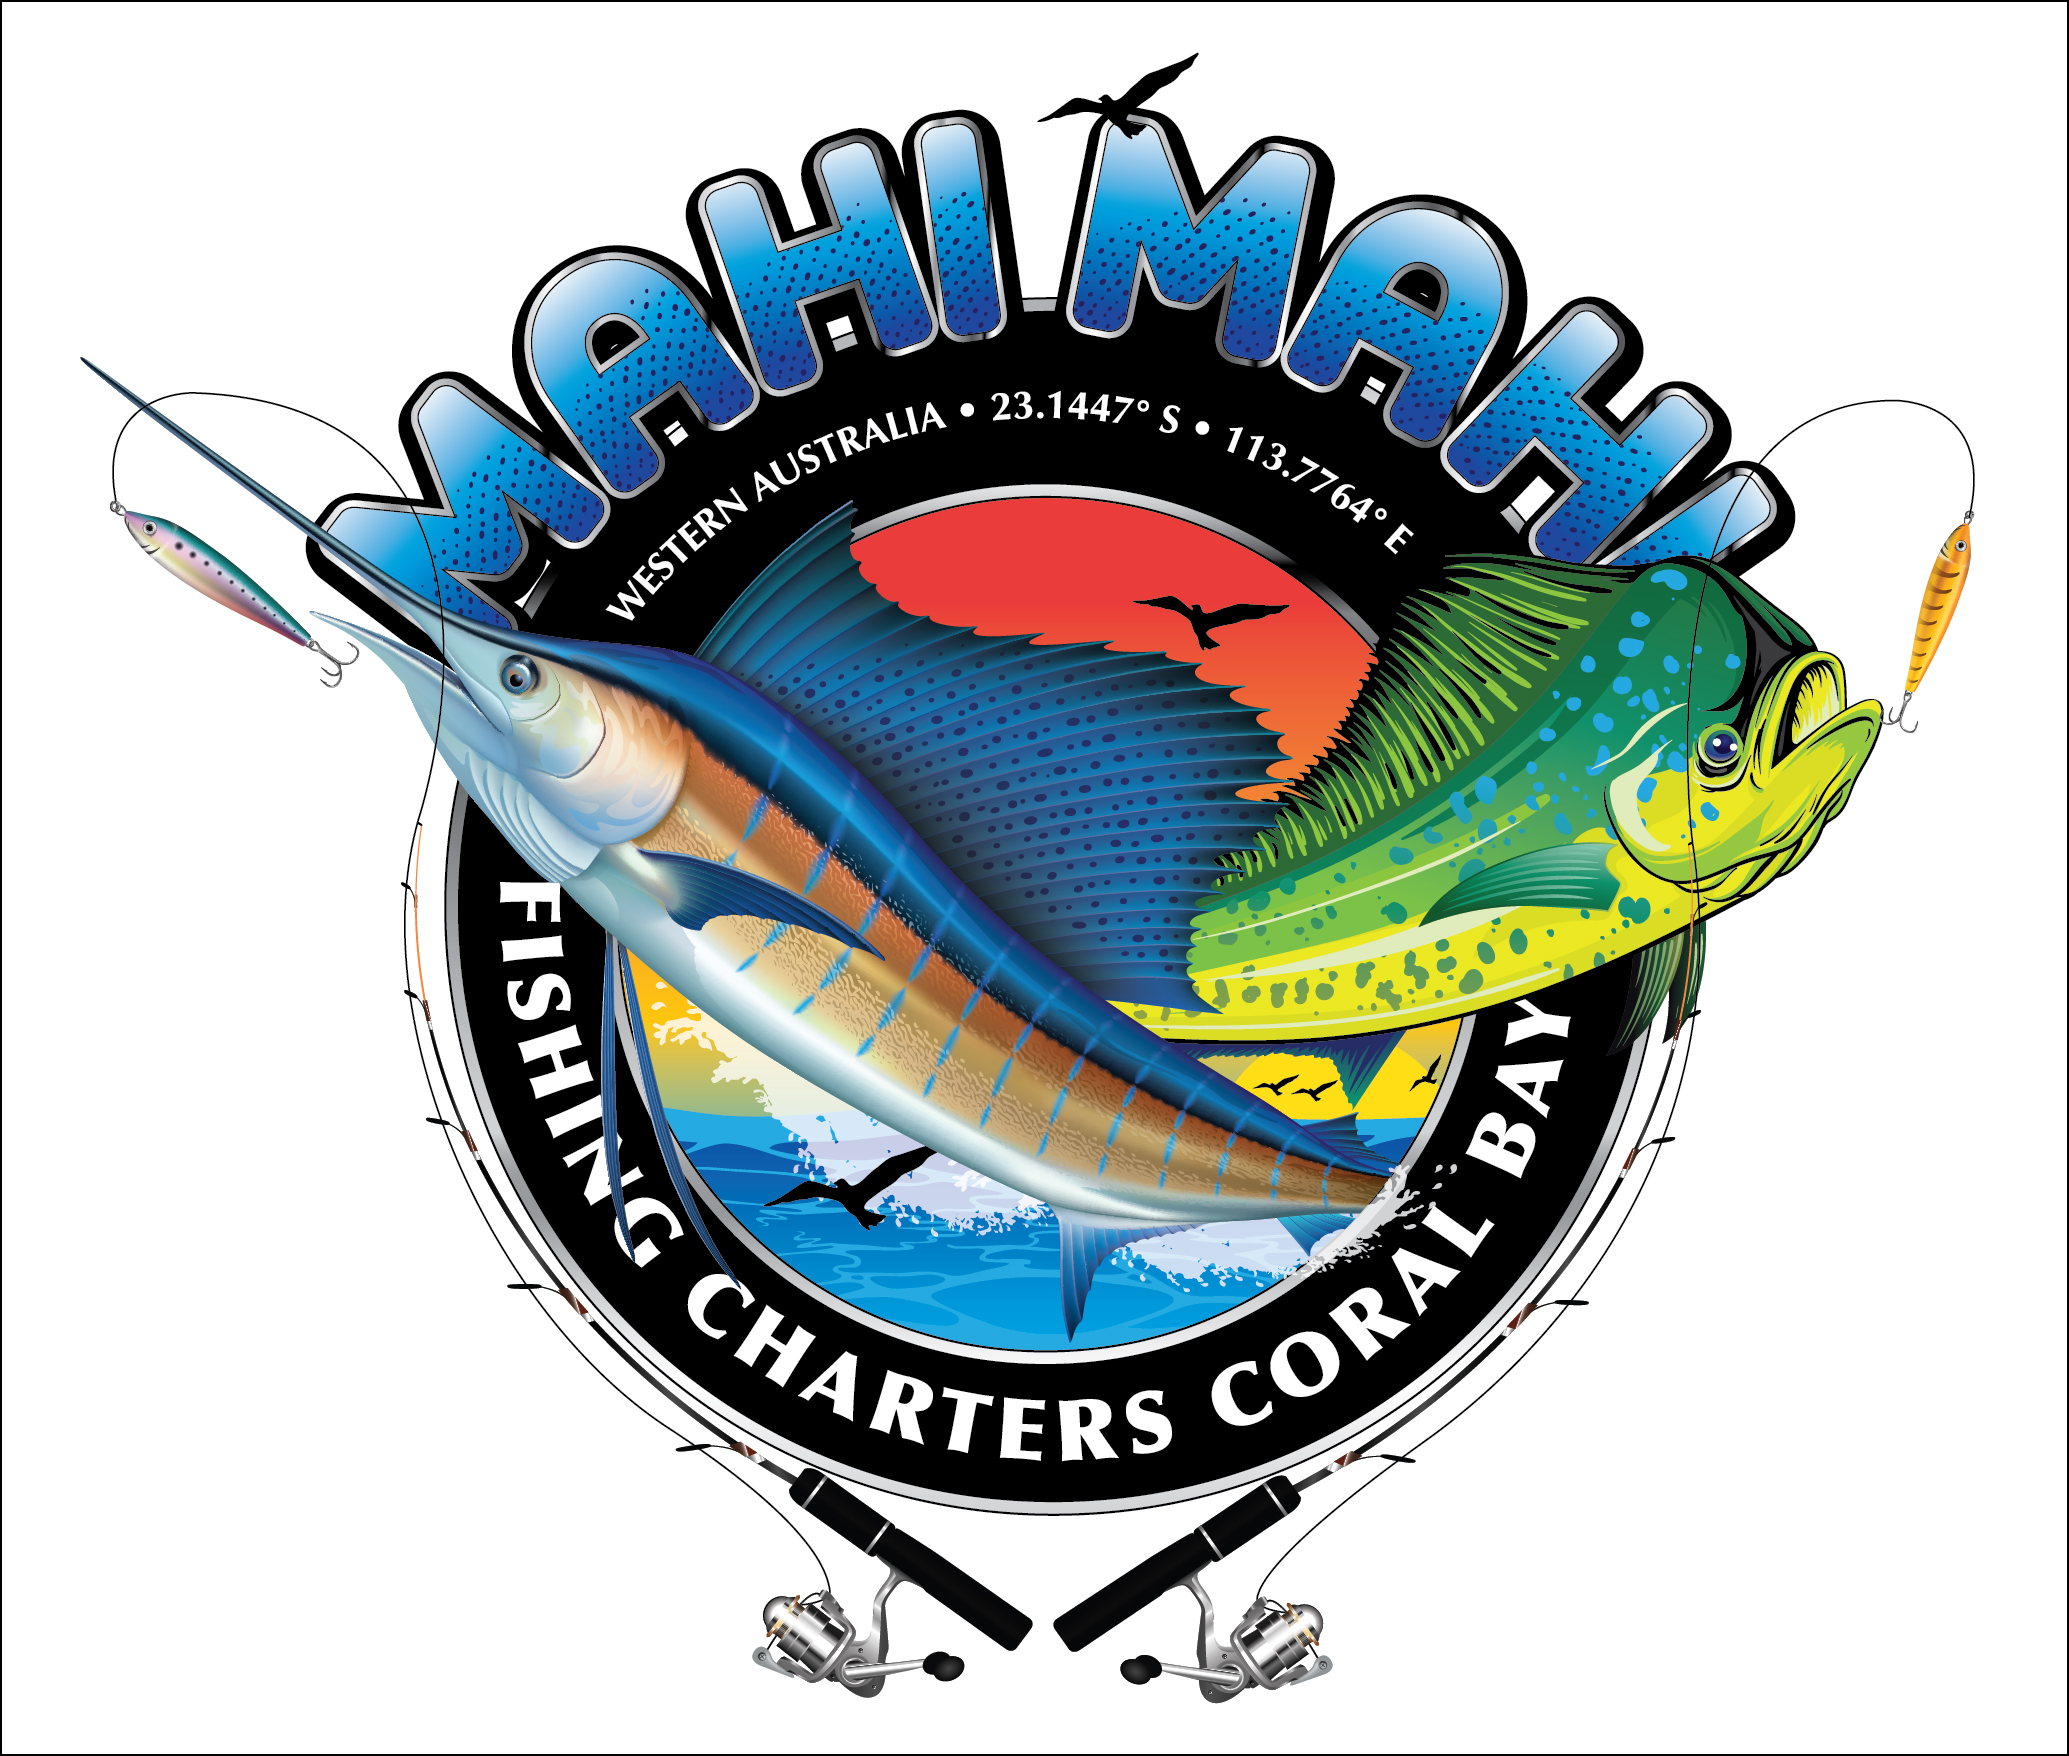 Special Events  Mahi Mahi Fishing Charters. Creative Advertising Signs Of Stroke. Catering Logo. Freedom Decals. Trump Pence Decals. Temple Stickers. Home Decor Murals. Smail Stickers. Pictograms Signs